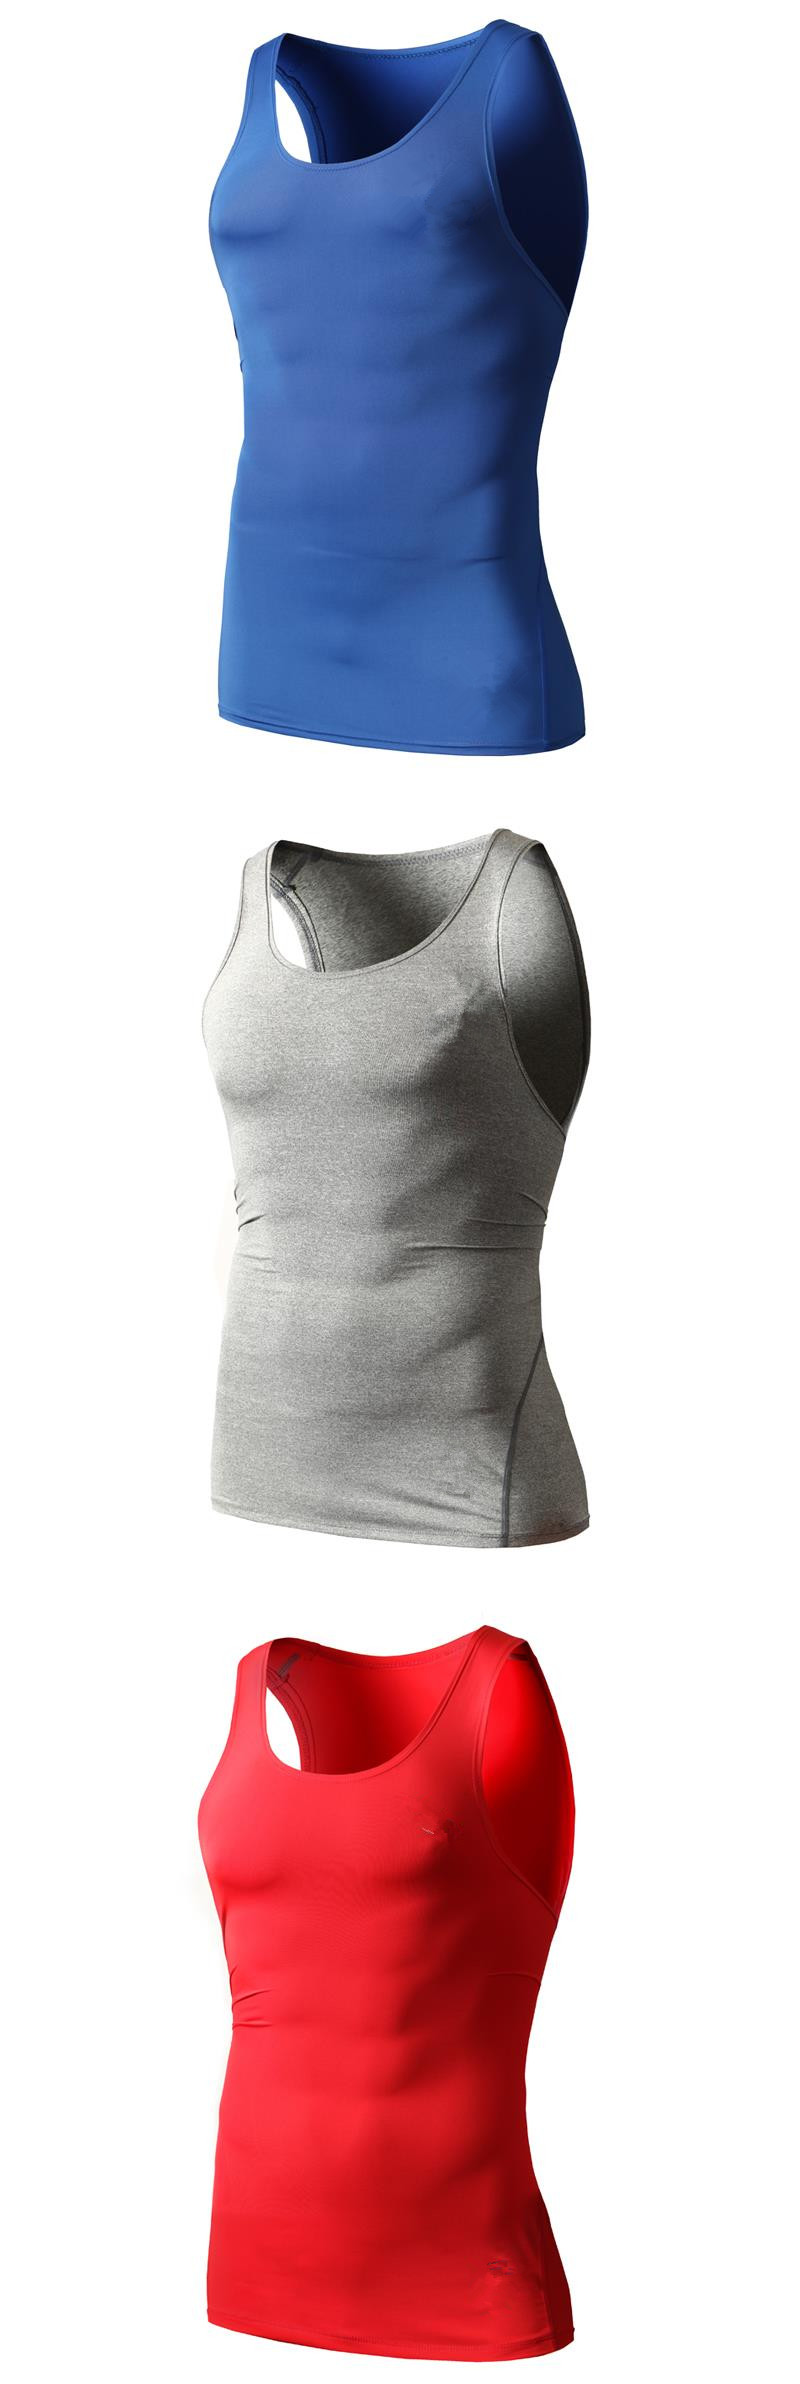 mens plain tank tops